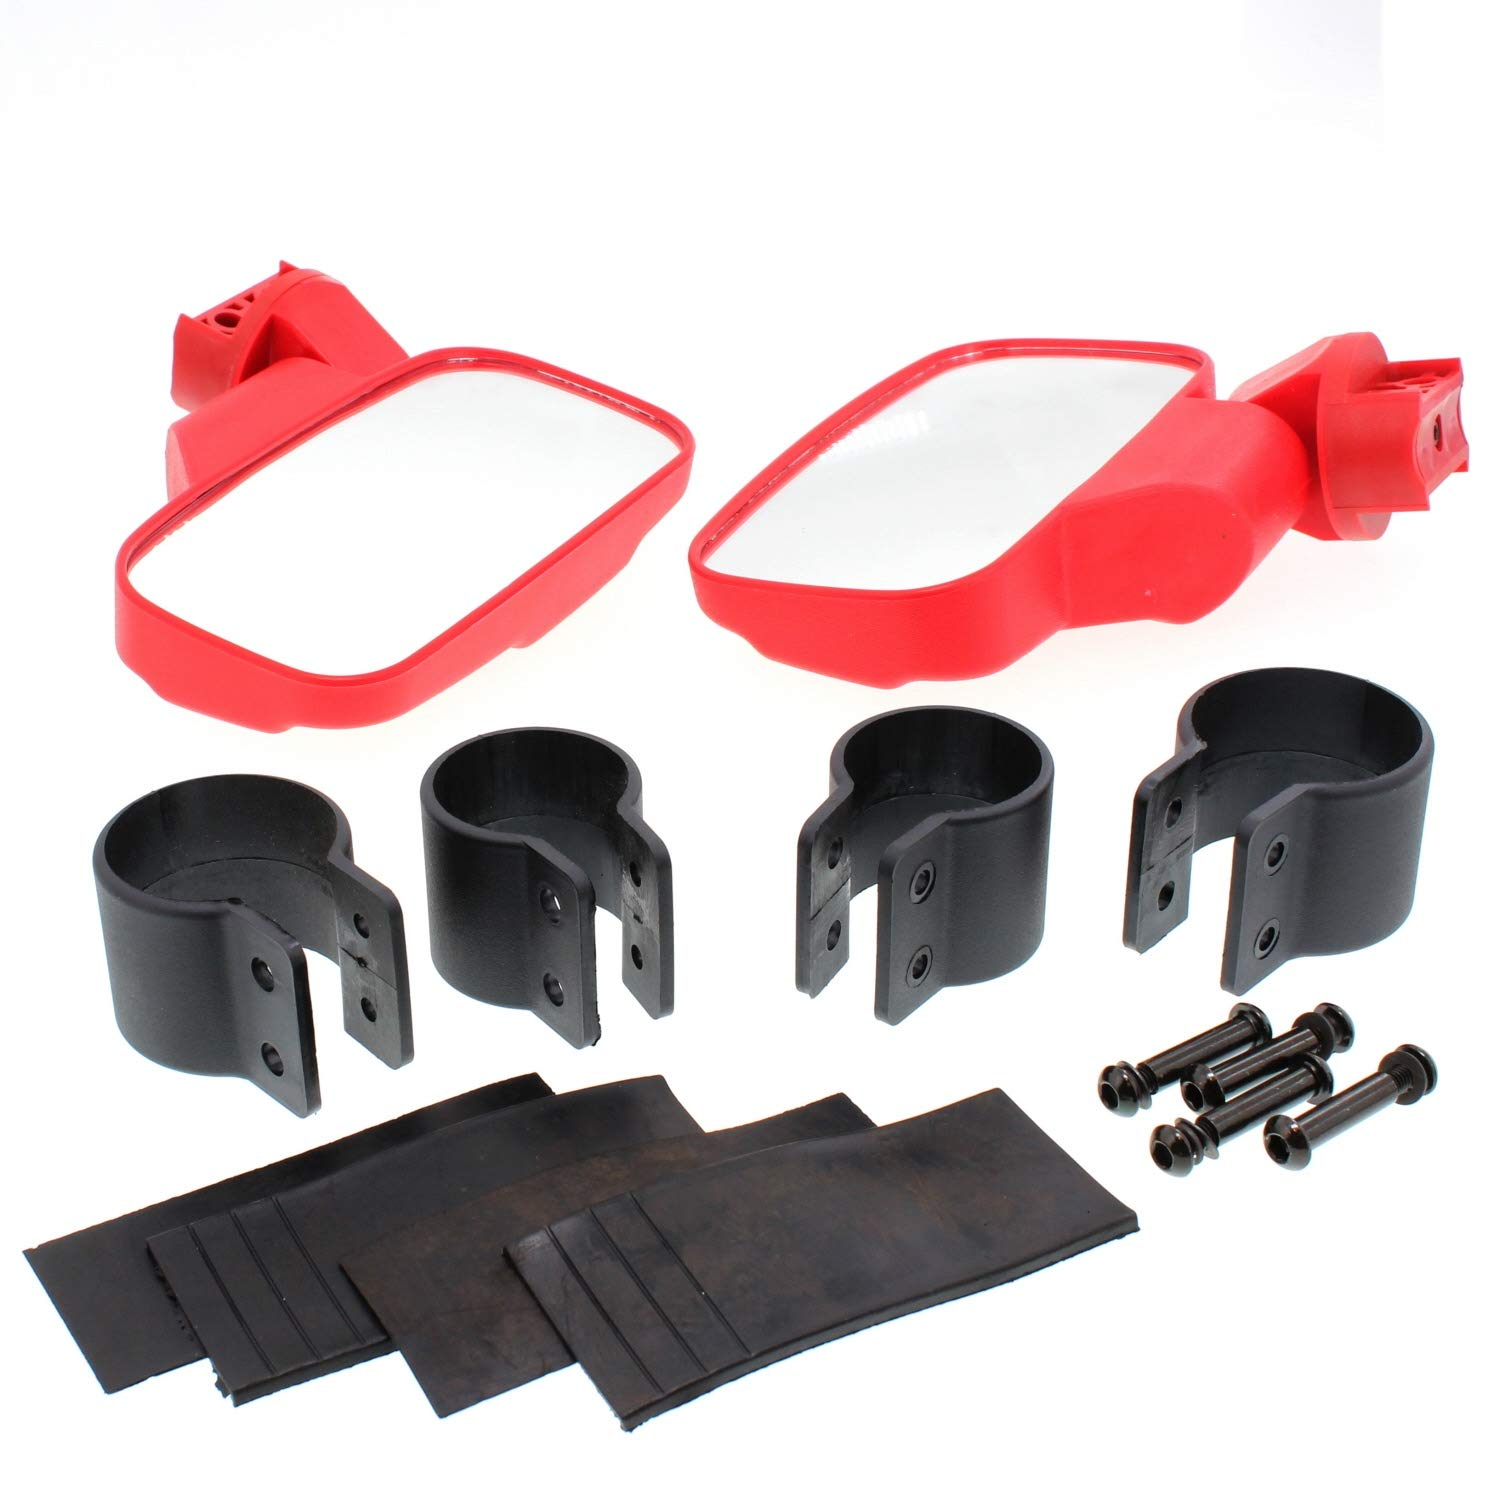 Polaris Ranger General 500 900 1000 Red UTV Universal Side View Mirror Kit Niche Industries